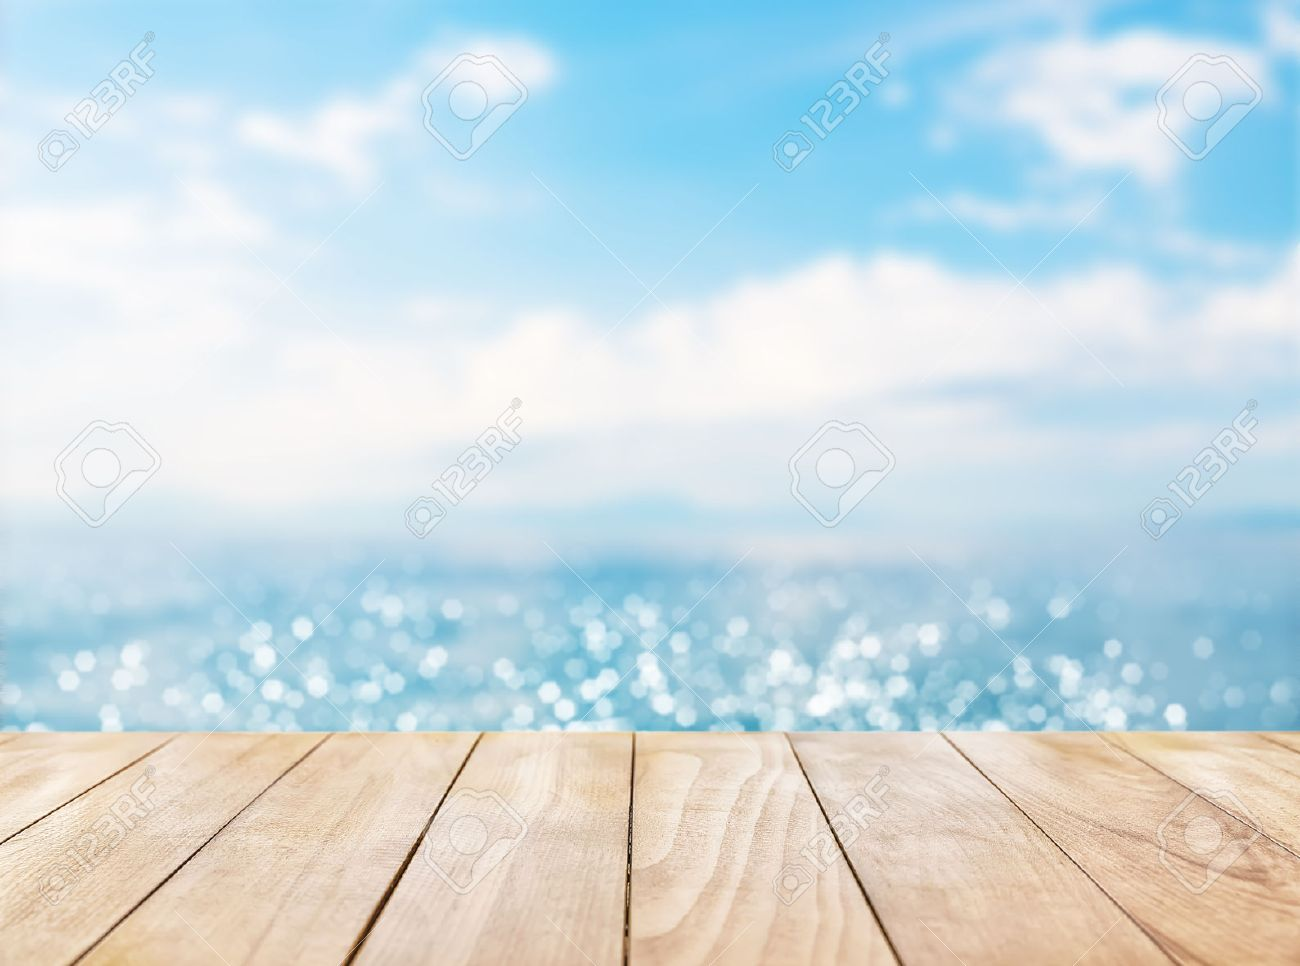 Wooden Table Top On Blue Sea And White Sand Beach Background Stock